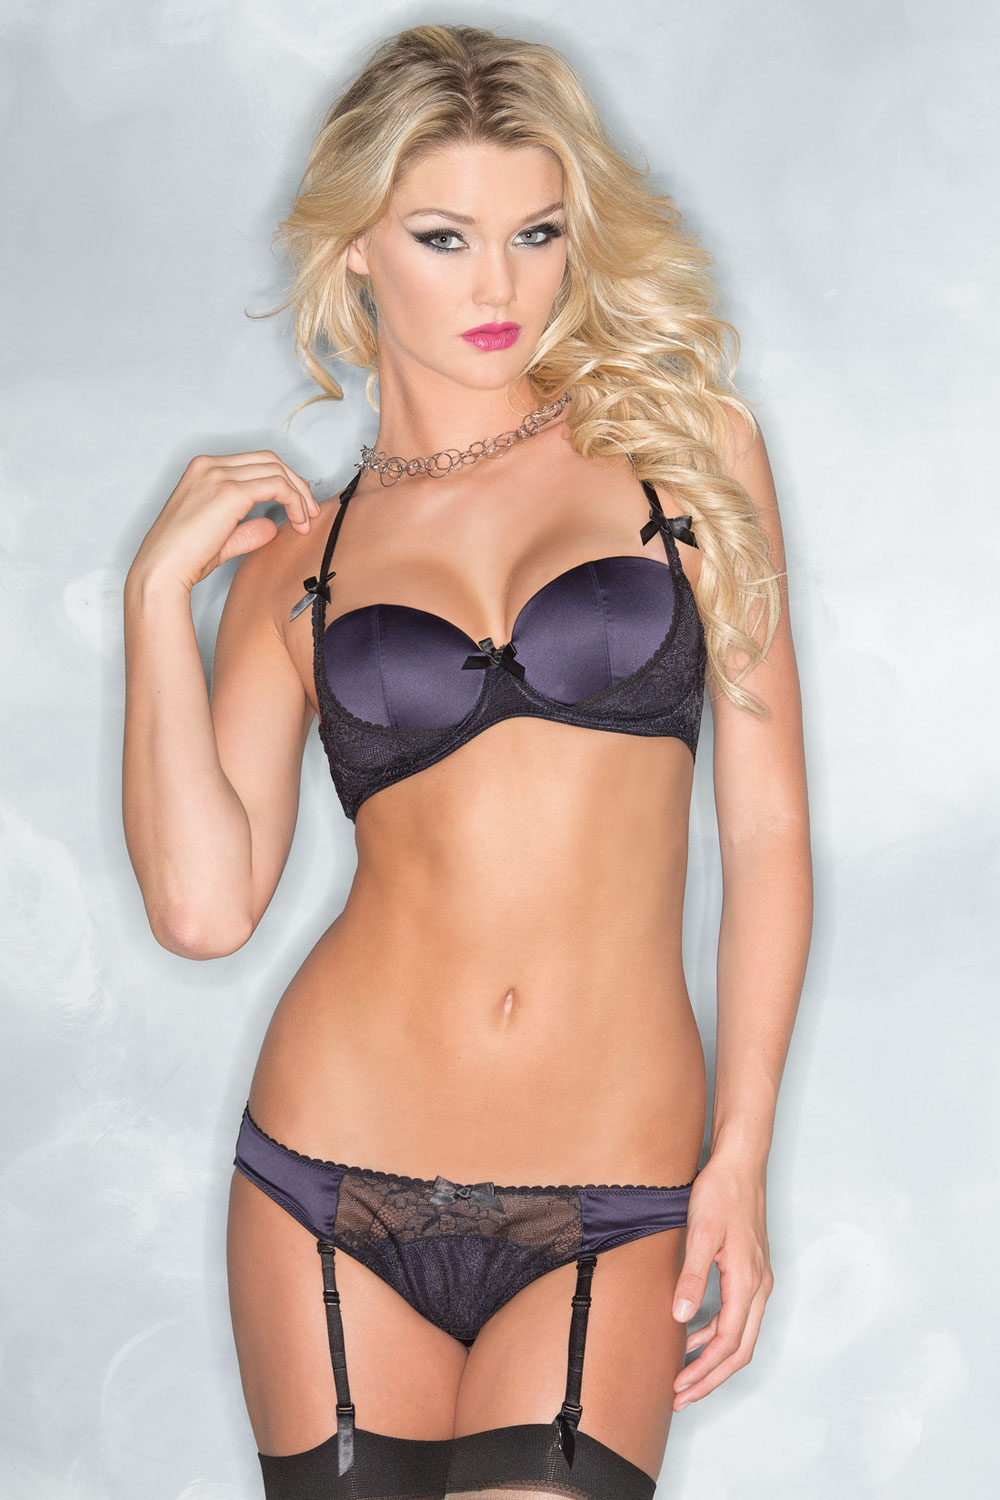 Be Wicked Bra and Panty Set Navy/Black - S BW1537